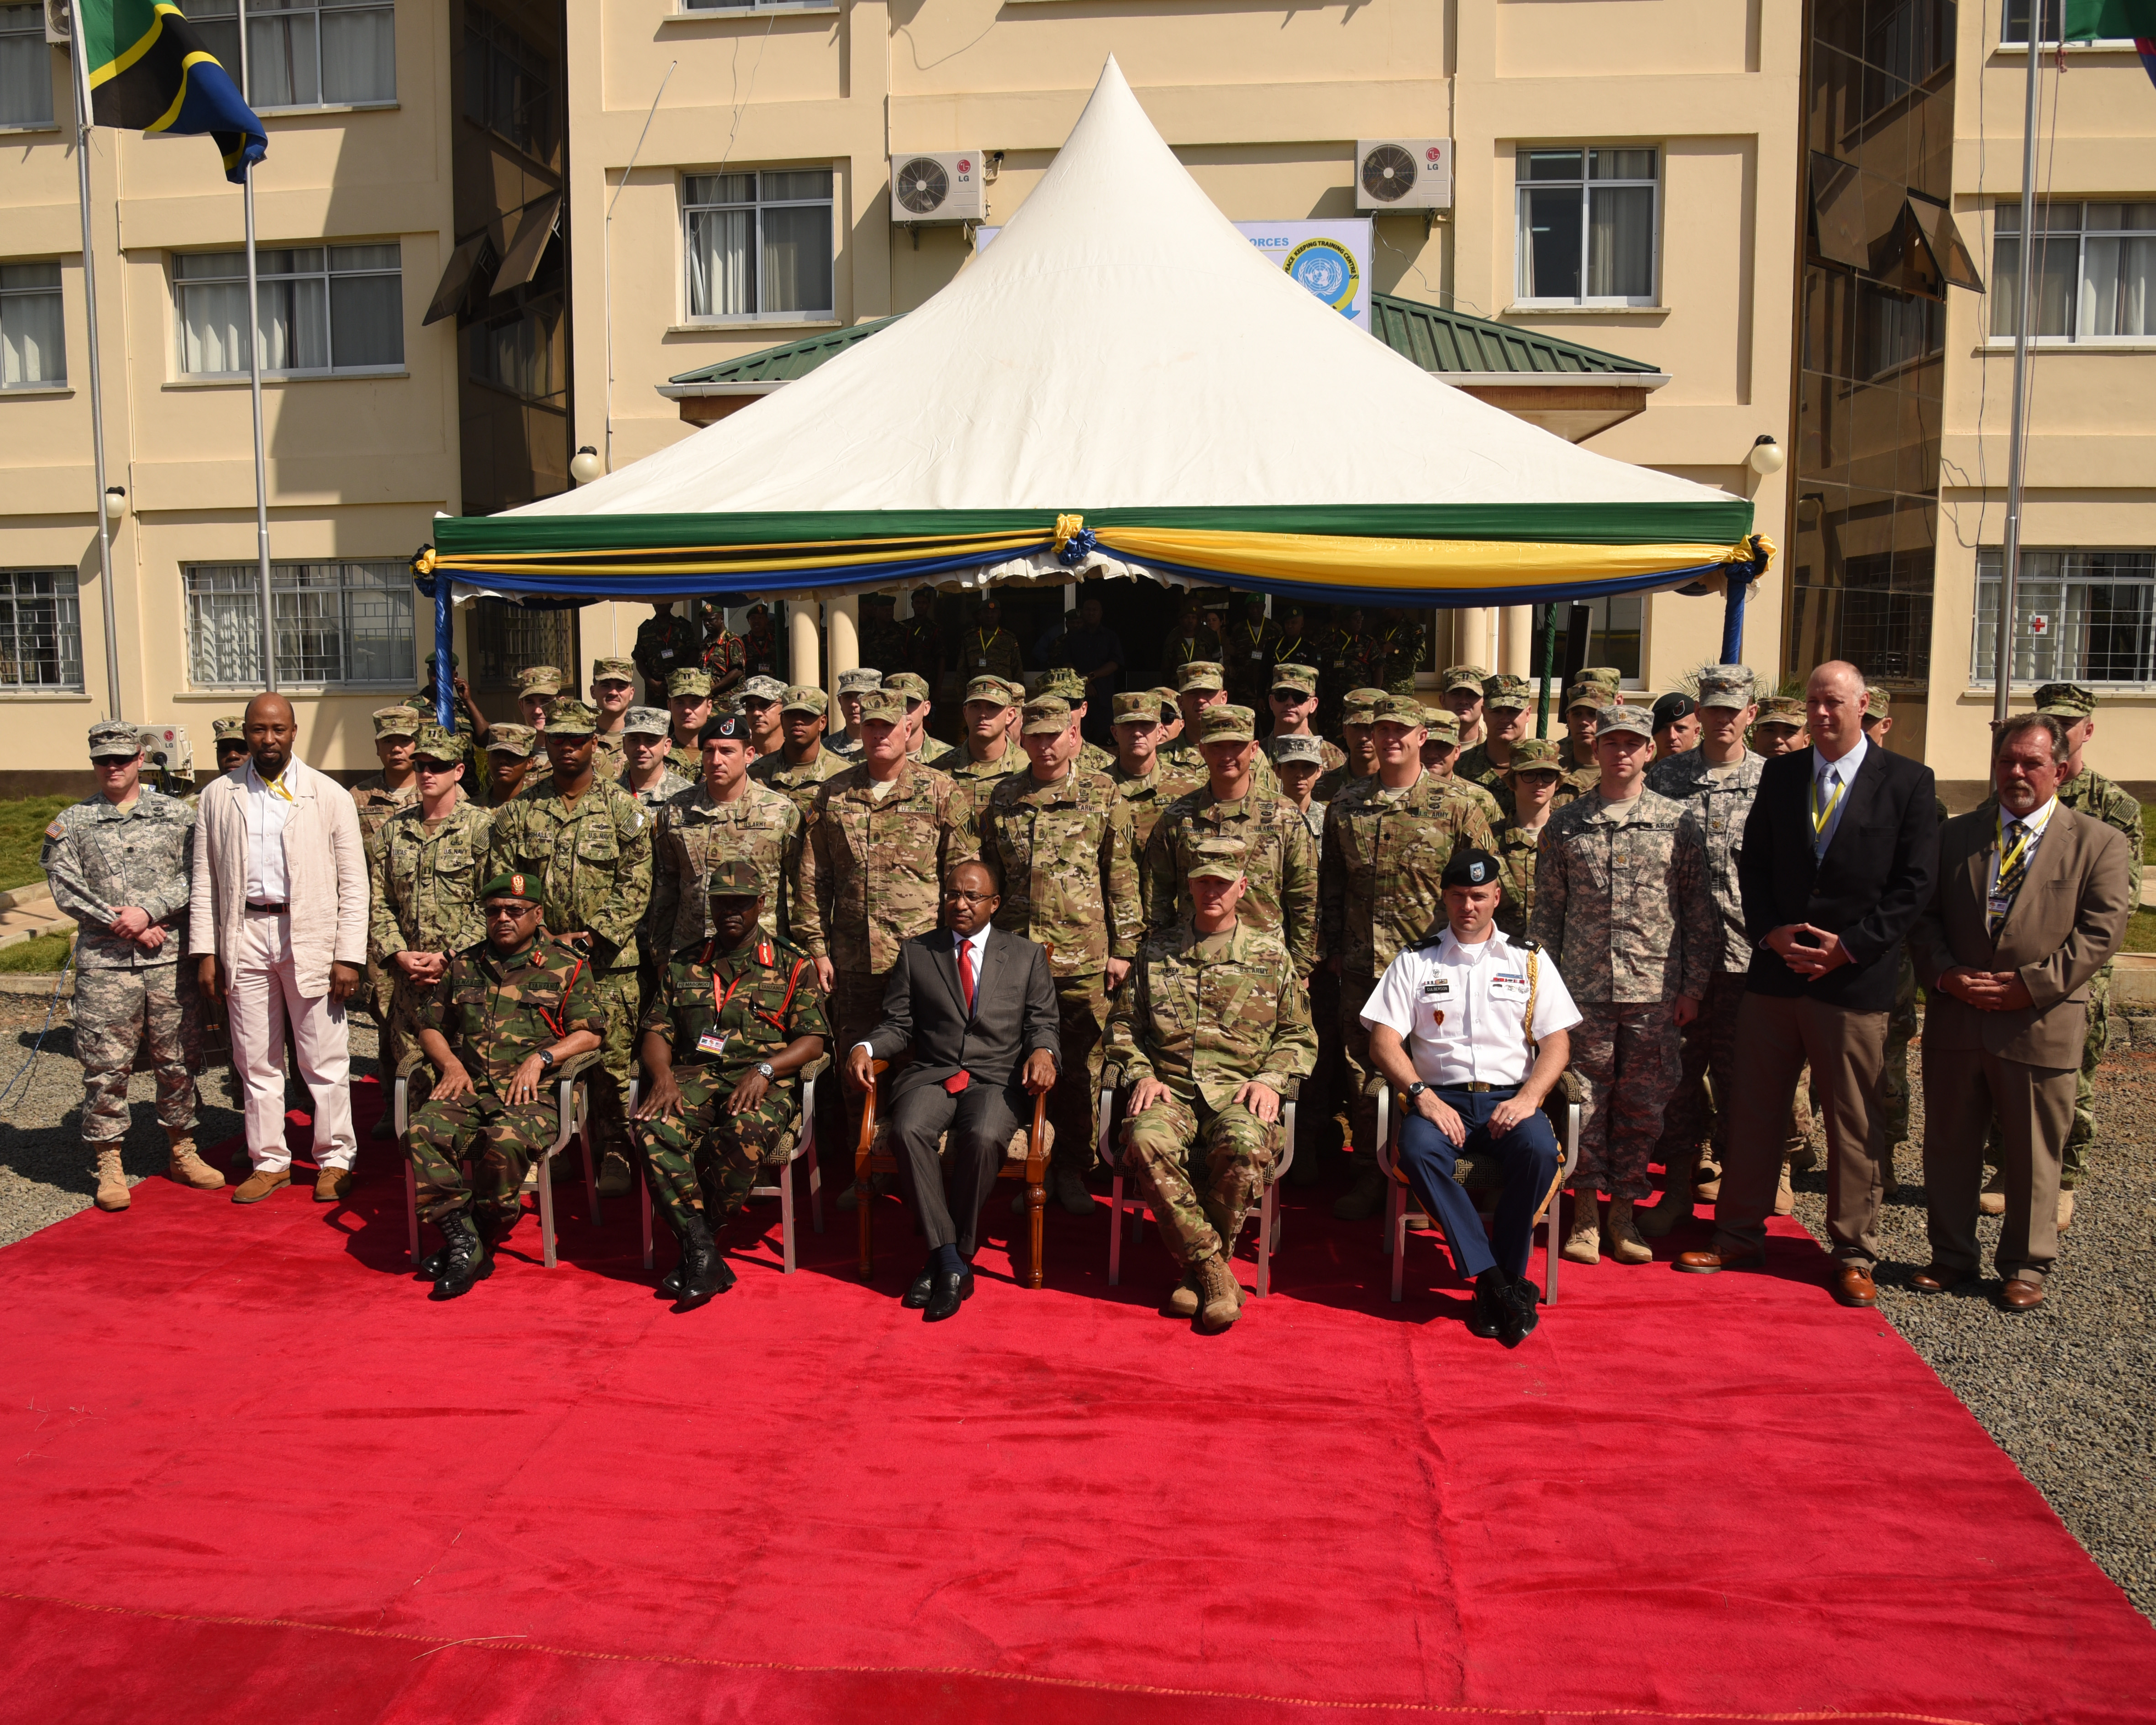 DAR ES SALAAM, Tanzania – Senior military leaders and Hussein Ali Mwyini, Minister of Defense and National Service, take a group photograph with the U.S. Eastern Accord 2016 participants at the Opening Ceremony at the Tanzanian Peacekeeping Training Centre on July 11, 2016, in Dar es Salaam, Tanzania. EA16 is an annual, combined, joint military exercise that brings together partner nations to practice and demonstrate proficiency in conducting peacekeeping operations. (U.S. Air Force photo by Staff Sgt. Tiffany DeNault)